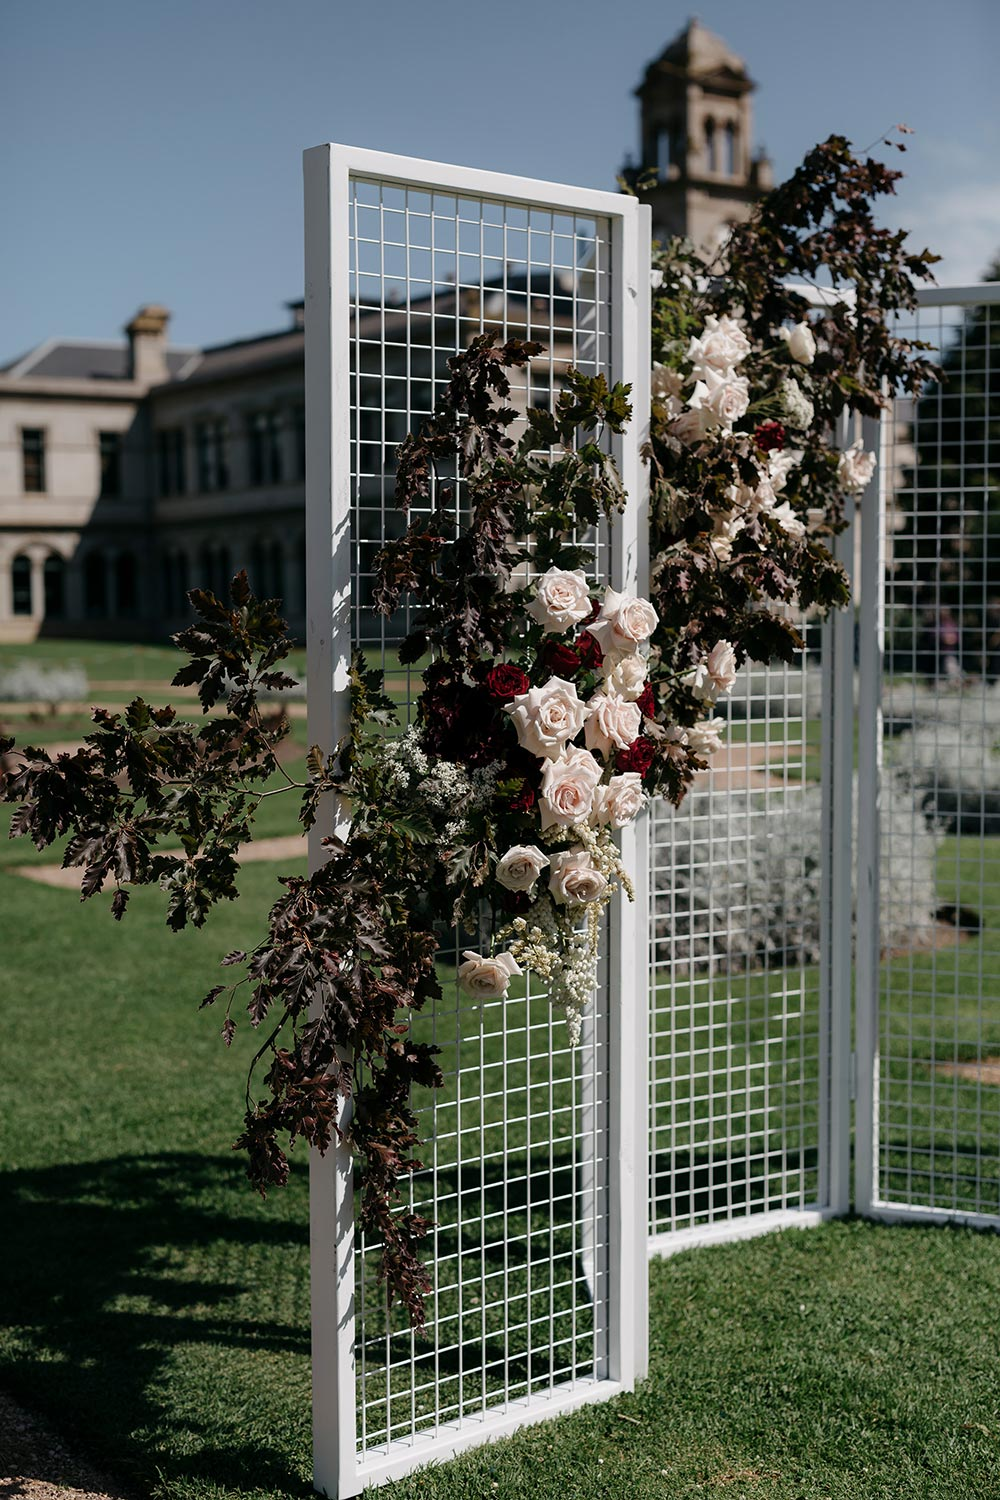 modern wedding ceremony backdrop with white grid panels and flowers